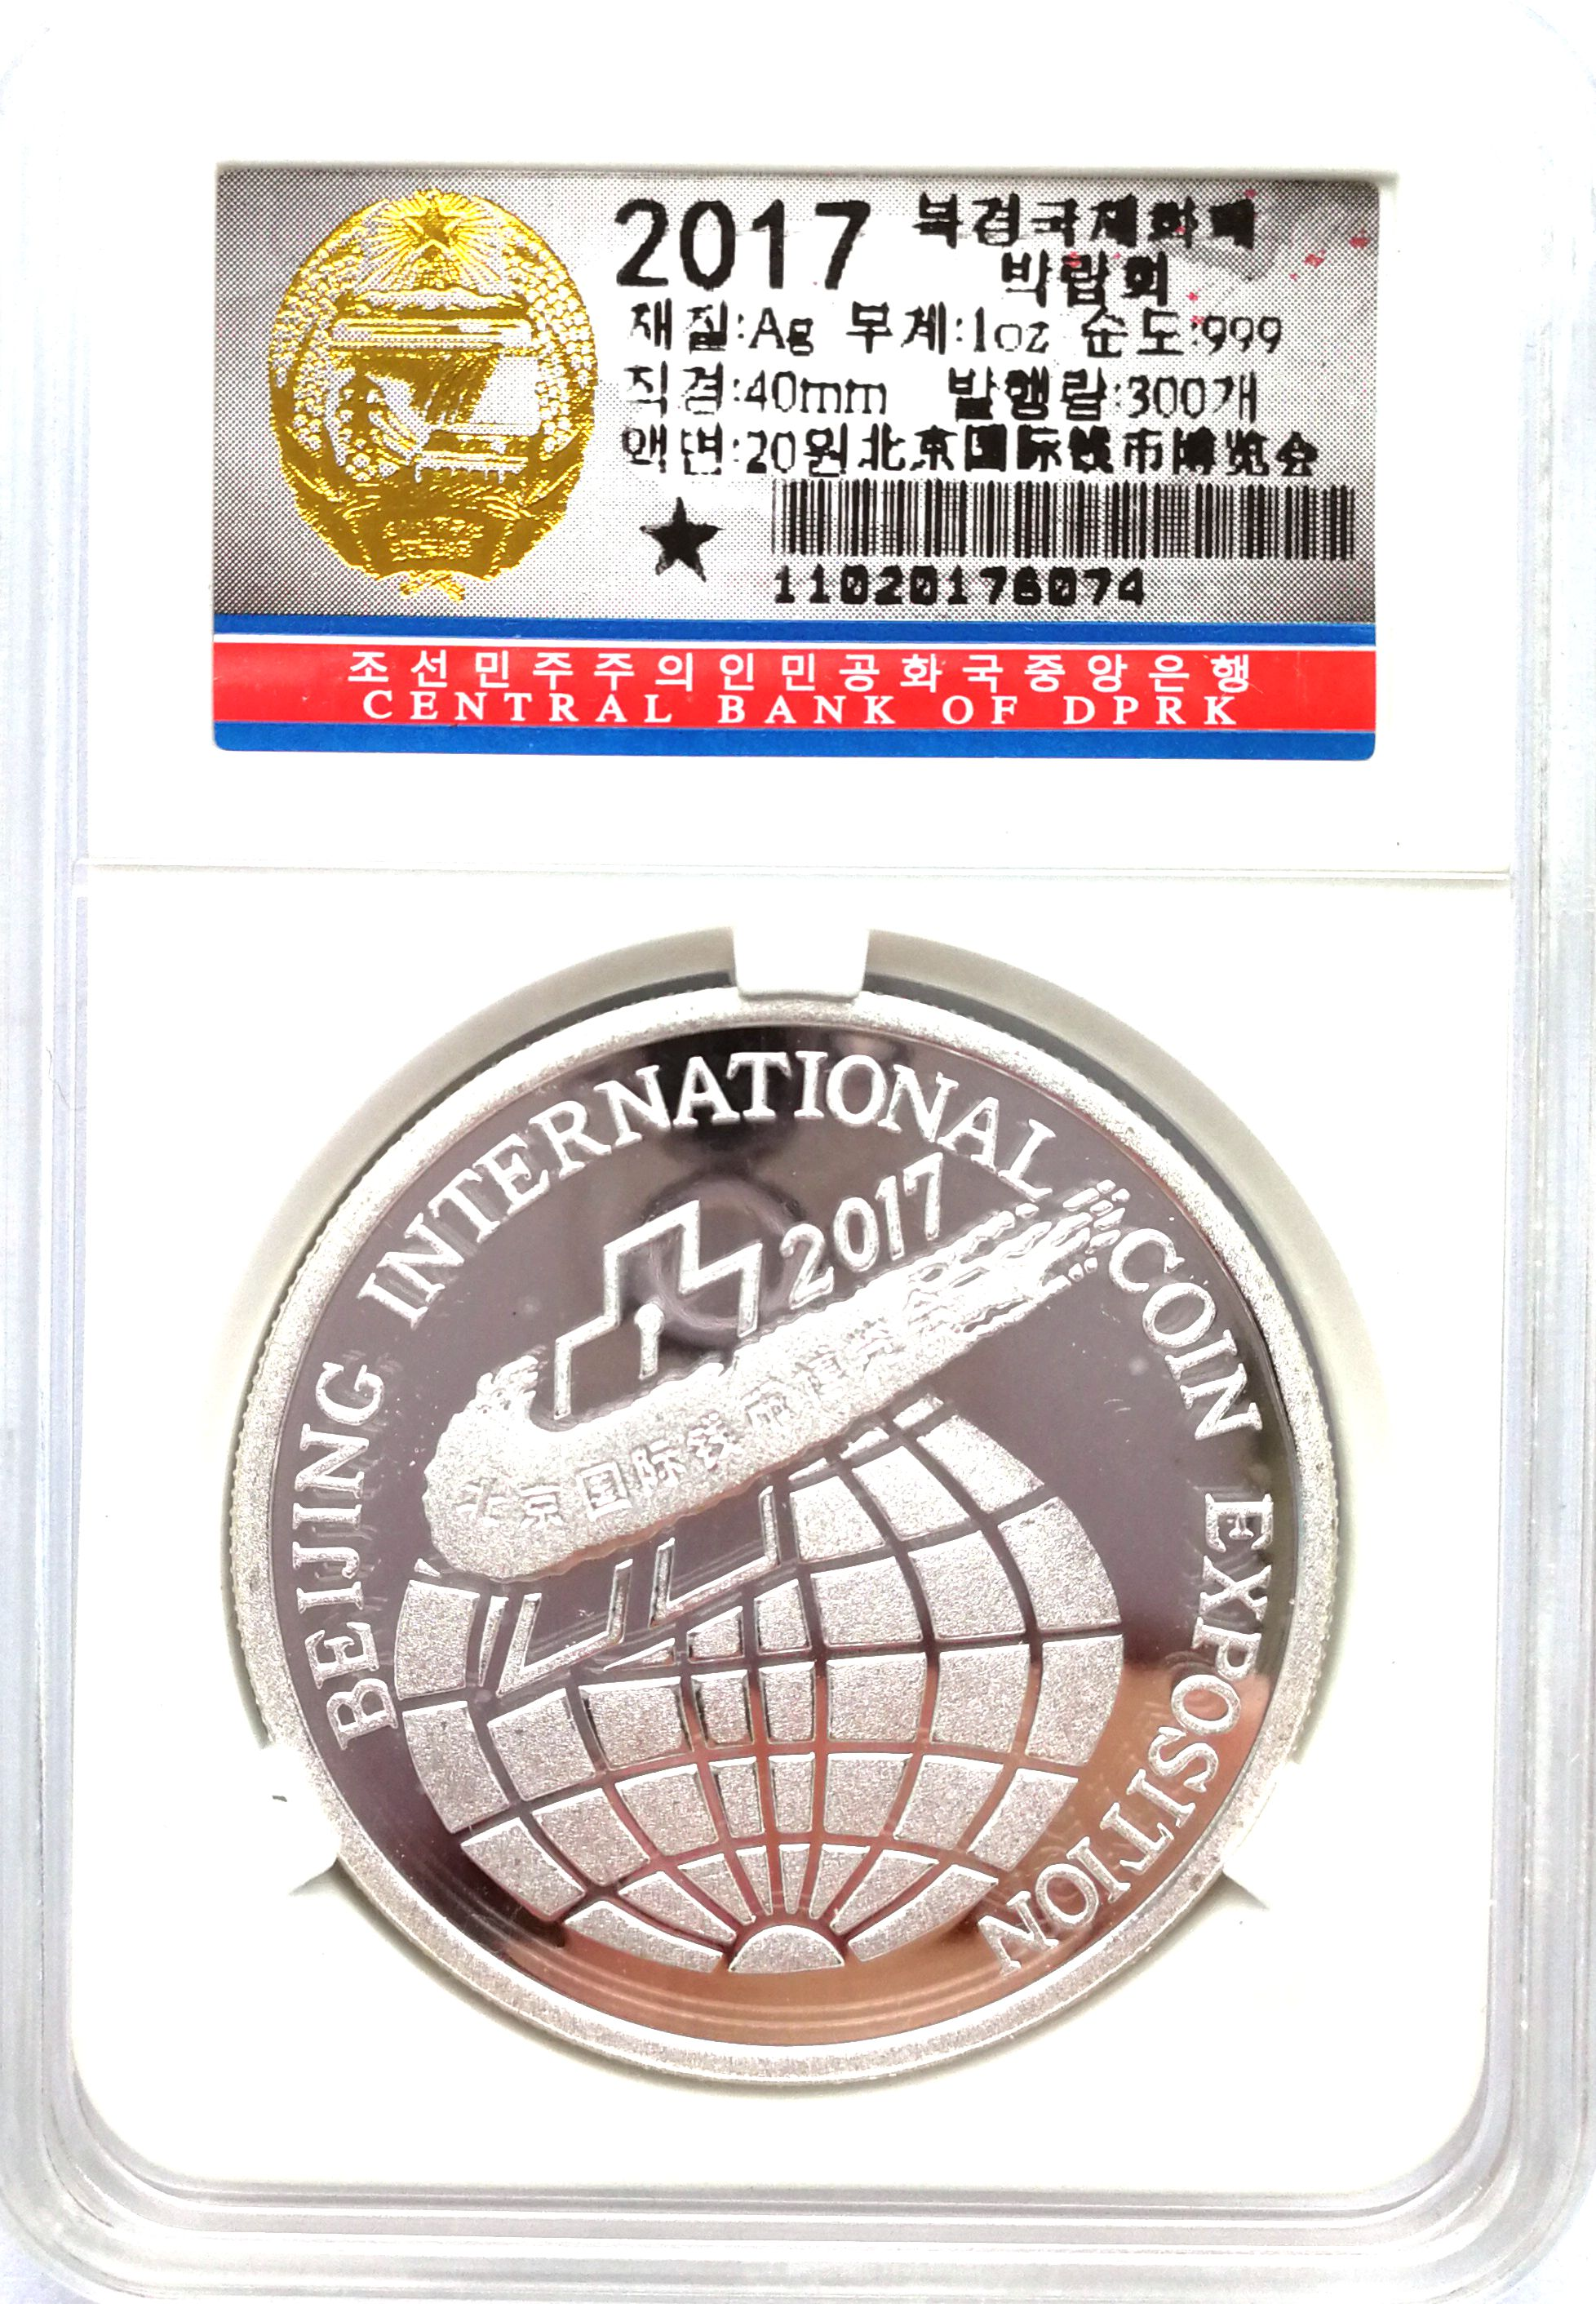 "L3582, Korea ""Beijing Numismatic Fair"" Silver Coin 1 oz, 2017 Korean Grade"